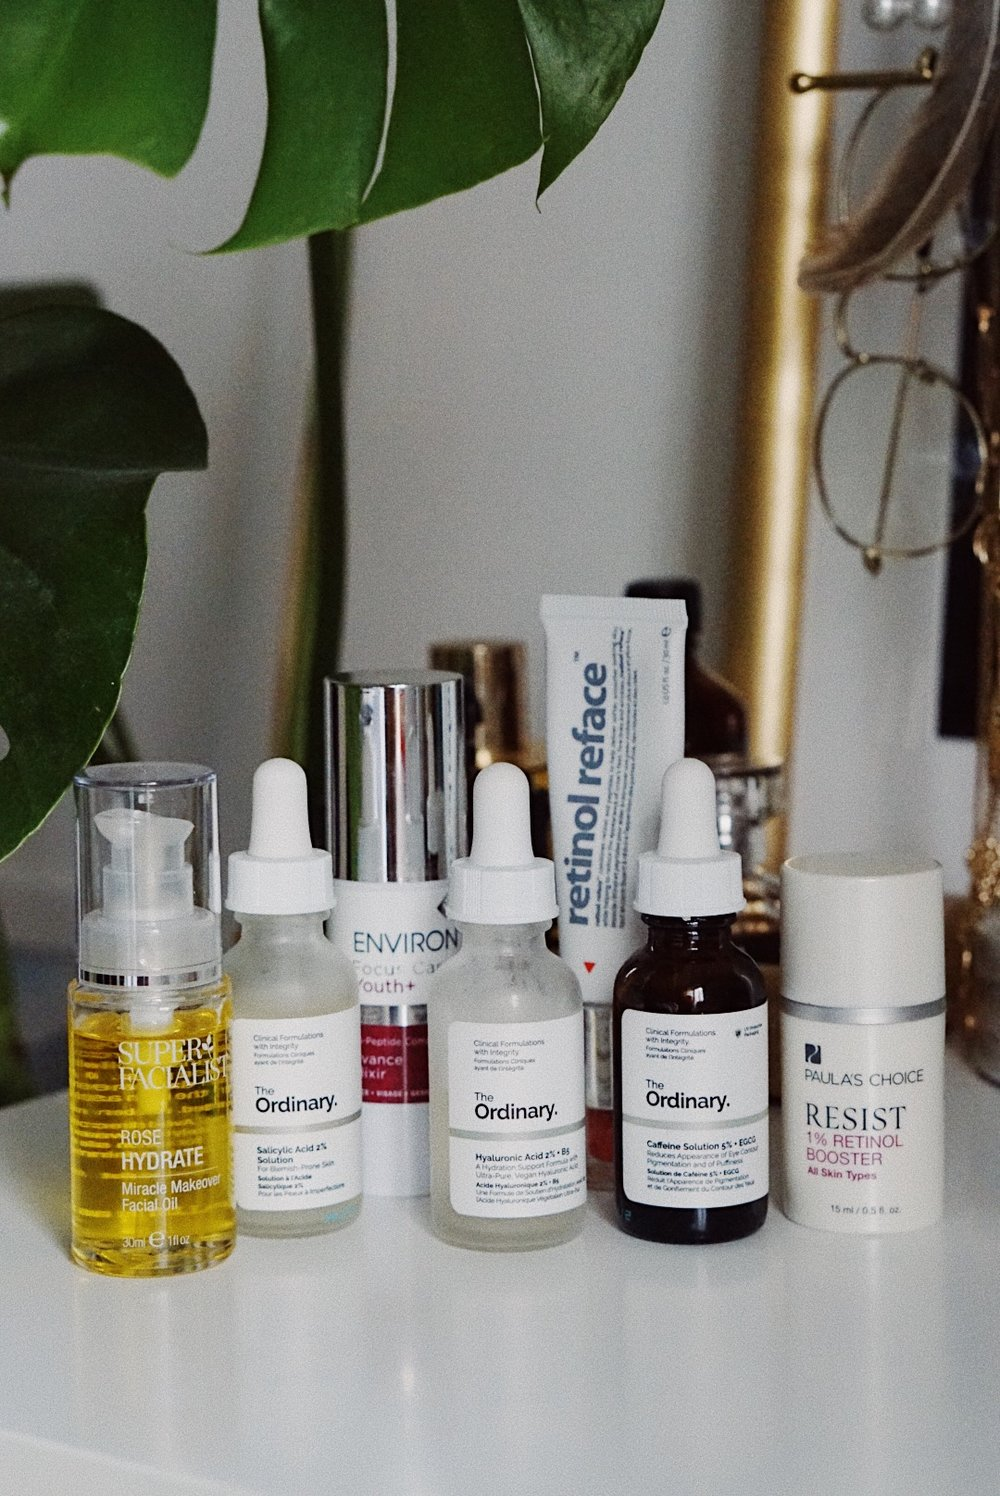 skincare-bynoelle-theordinary-superfacialist